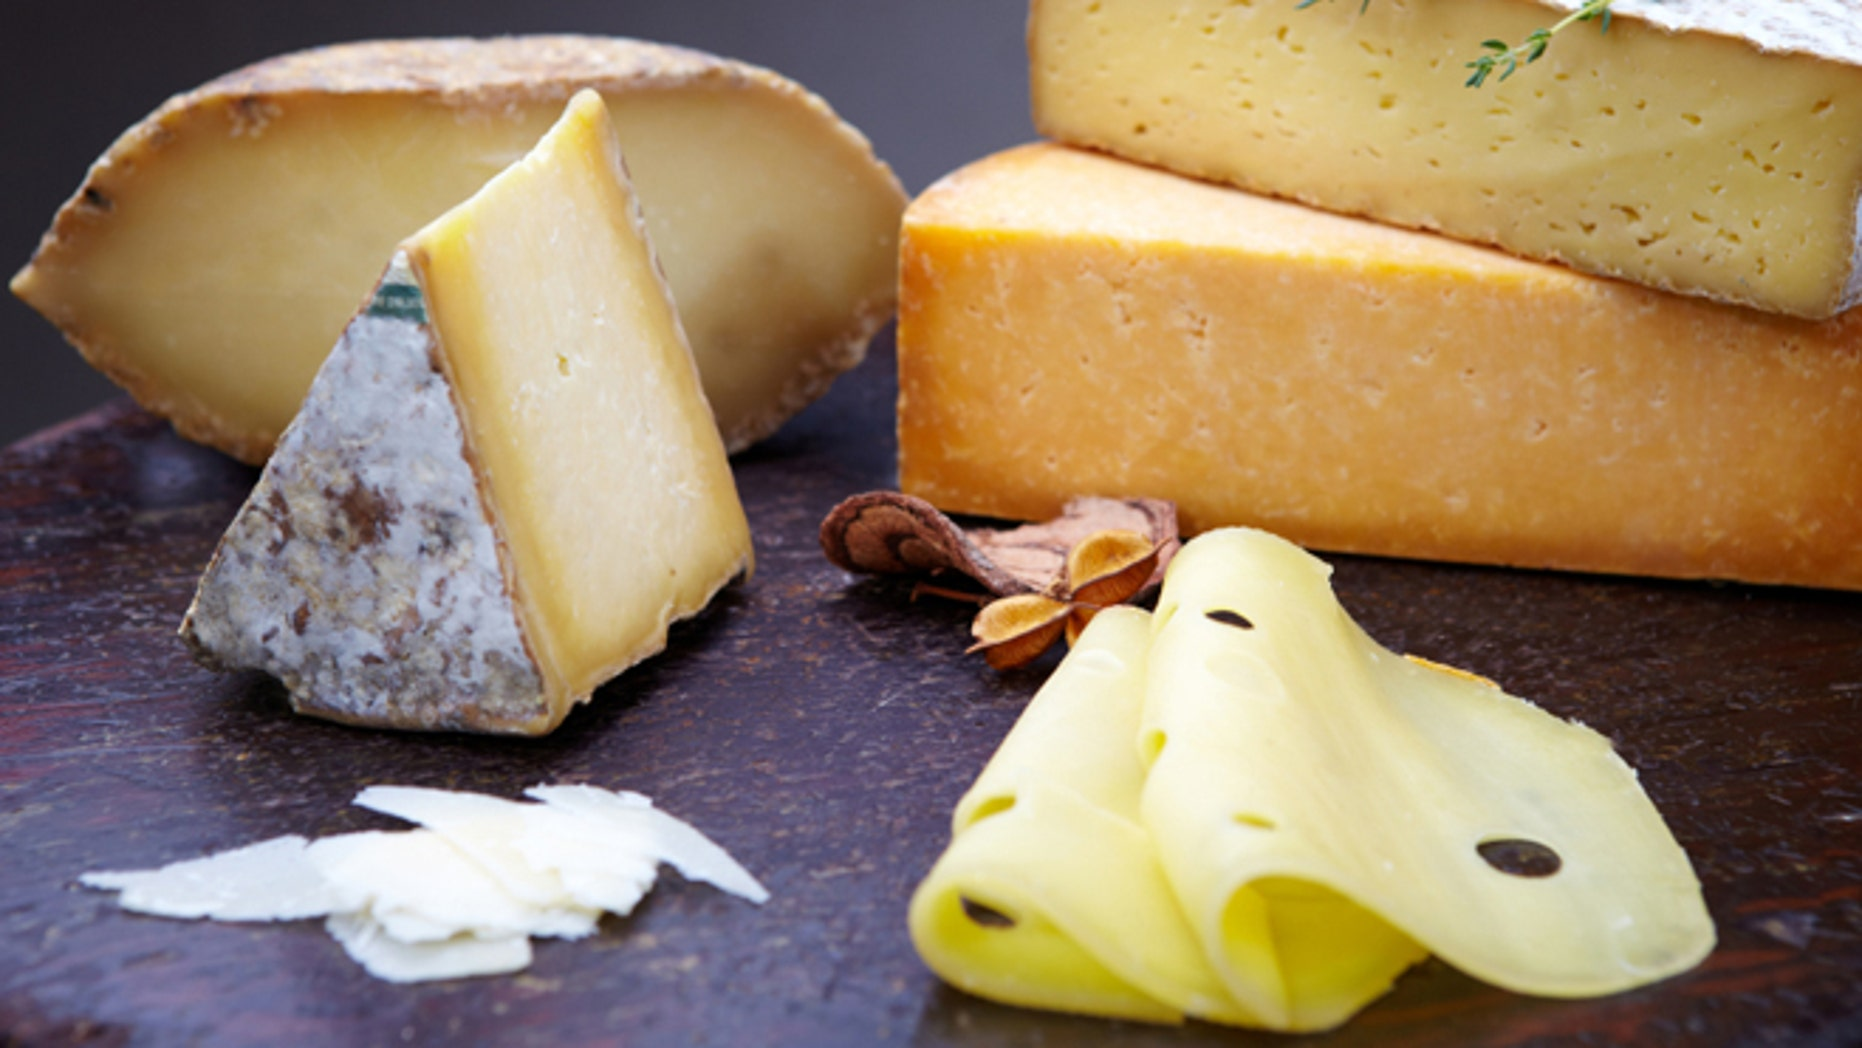 Did you know there are over 2,000 varieties of cheese?